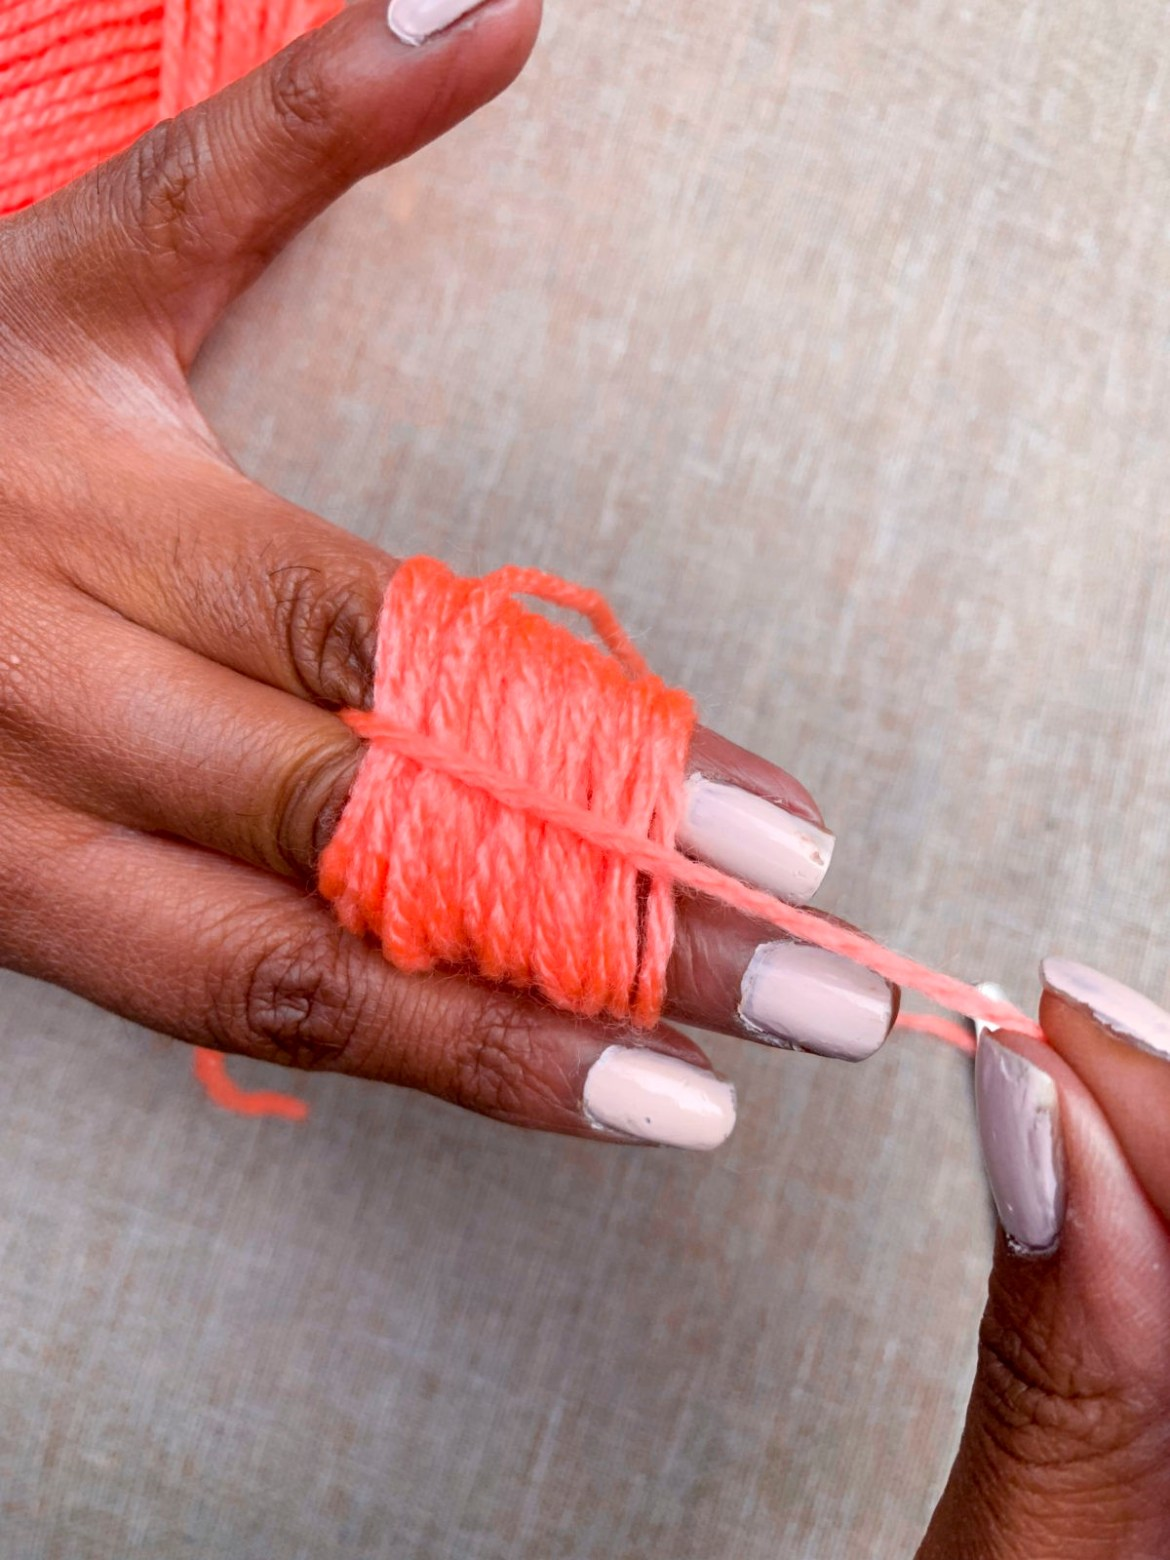 How to Make Pom Poms with Yarn